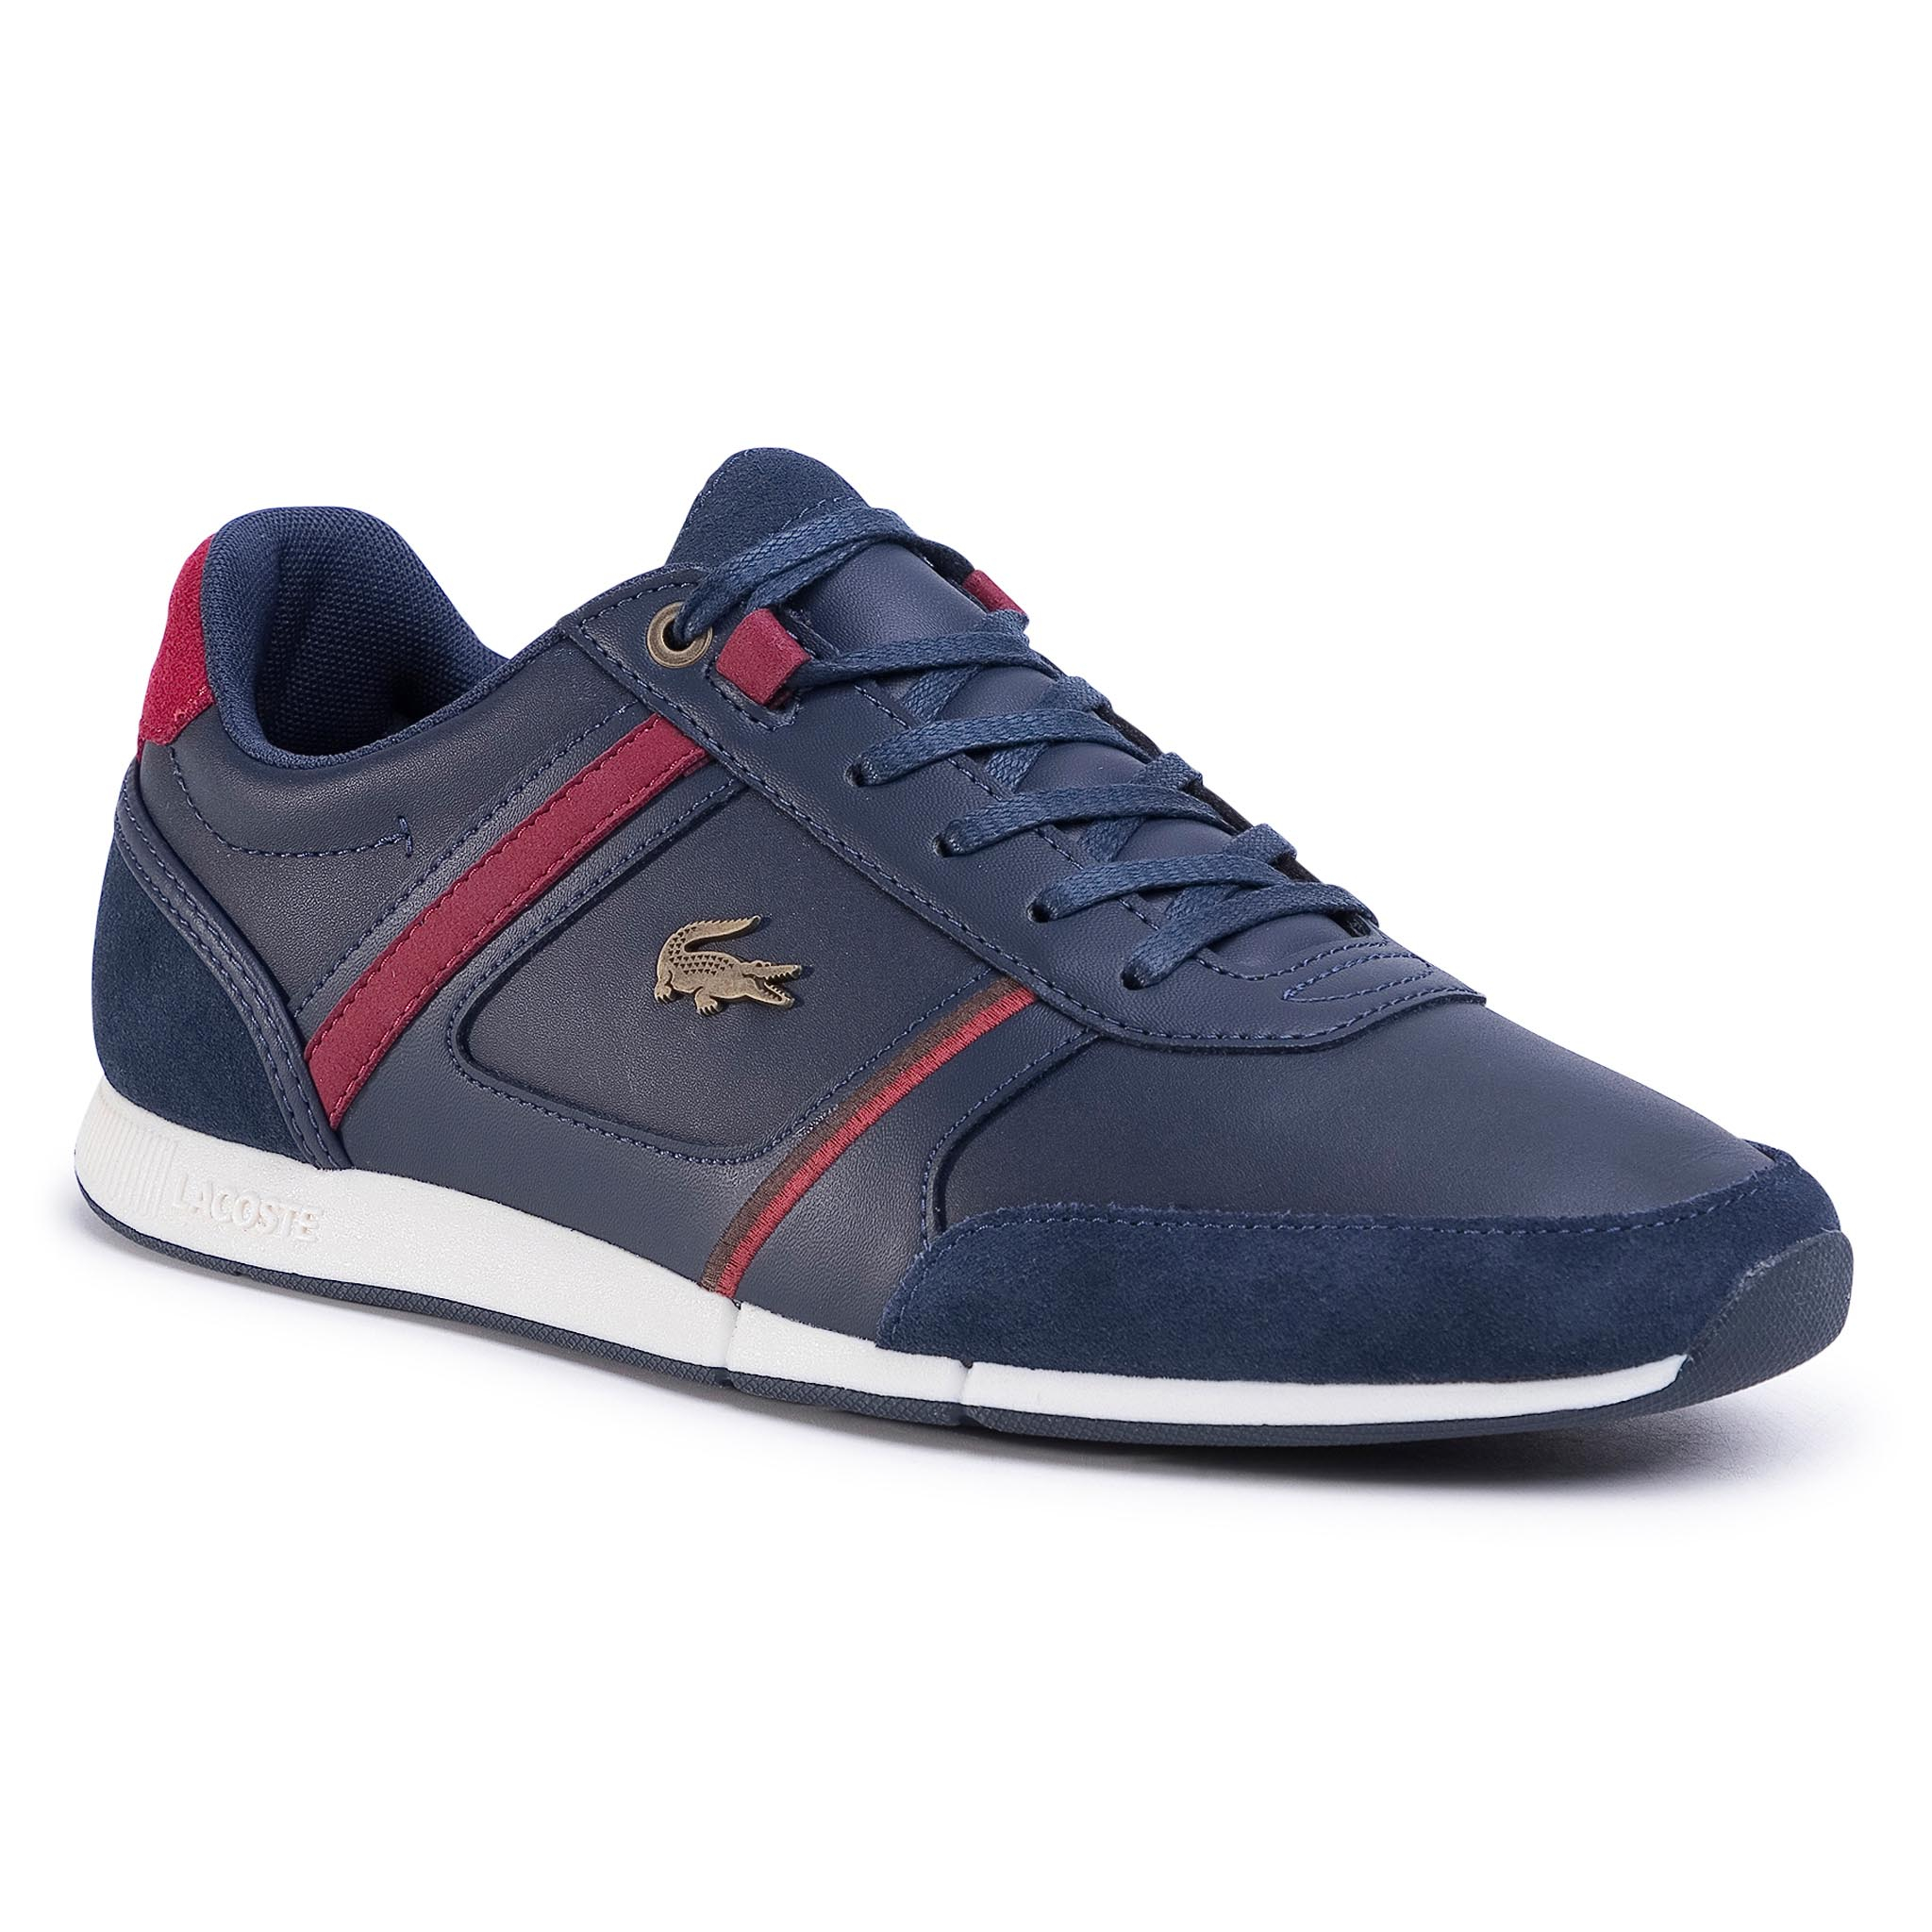 Sneakers LACOSTE - Menerva 120 1 Cma 7-39CMA00075A5 Nvy/Dk Red